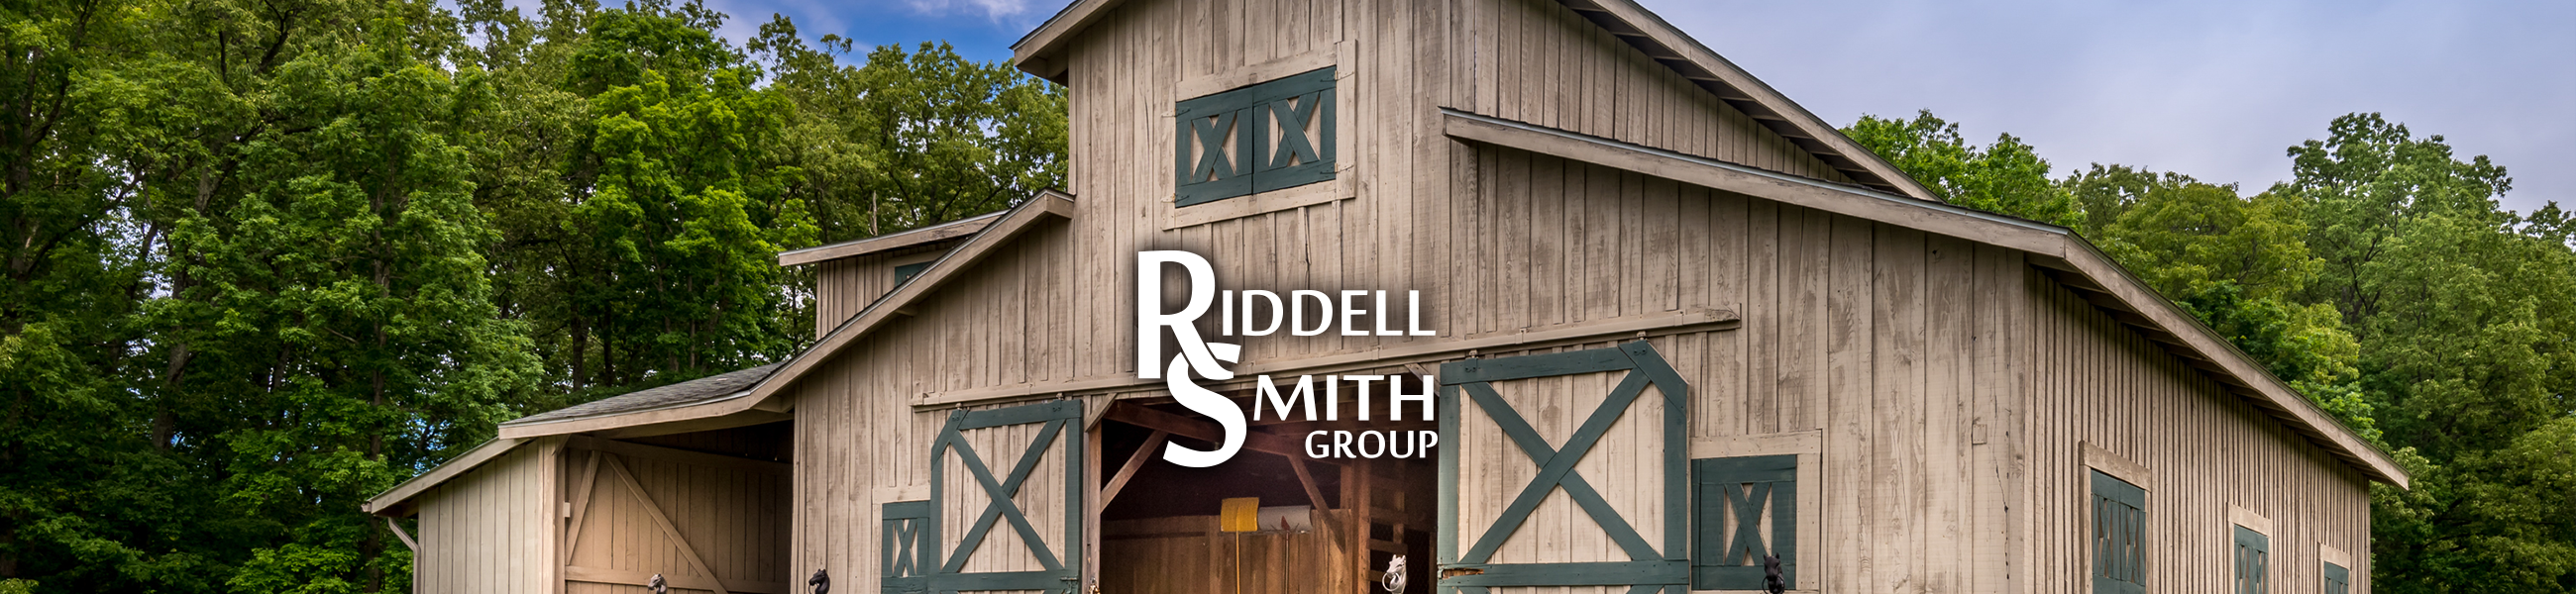 Horse Farms for Sale - Riddell Smith Group 1